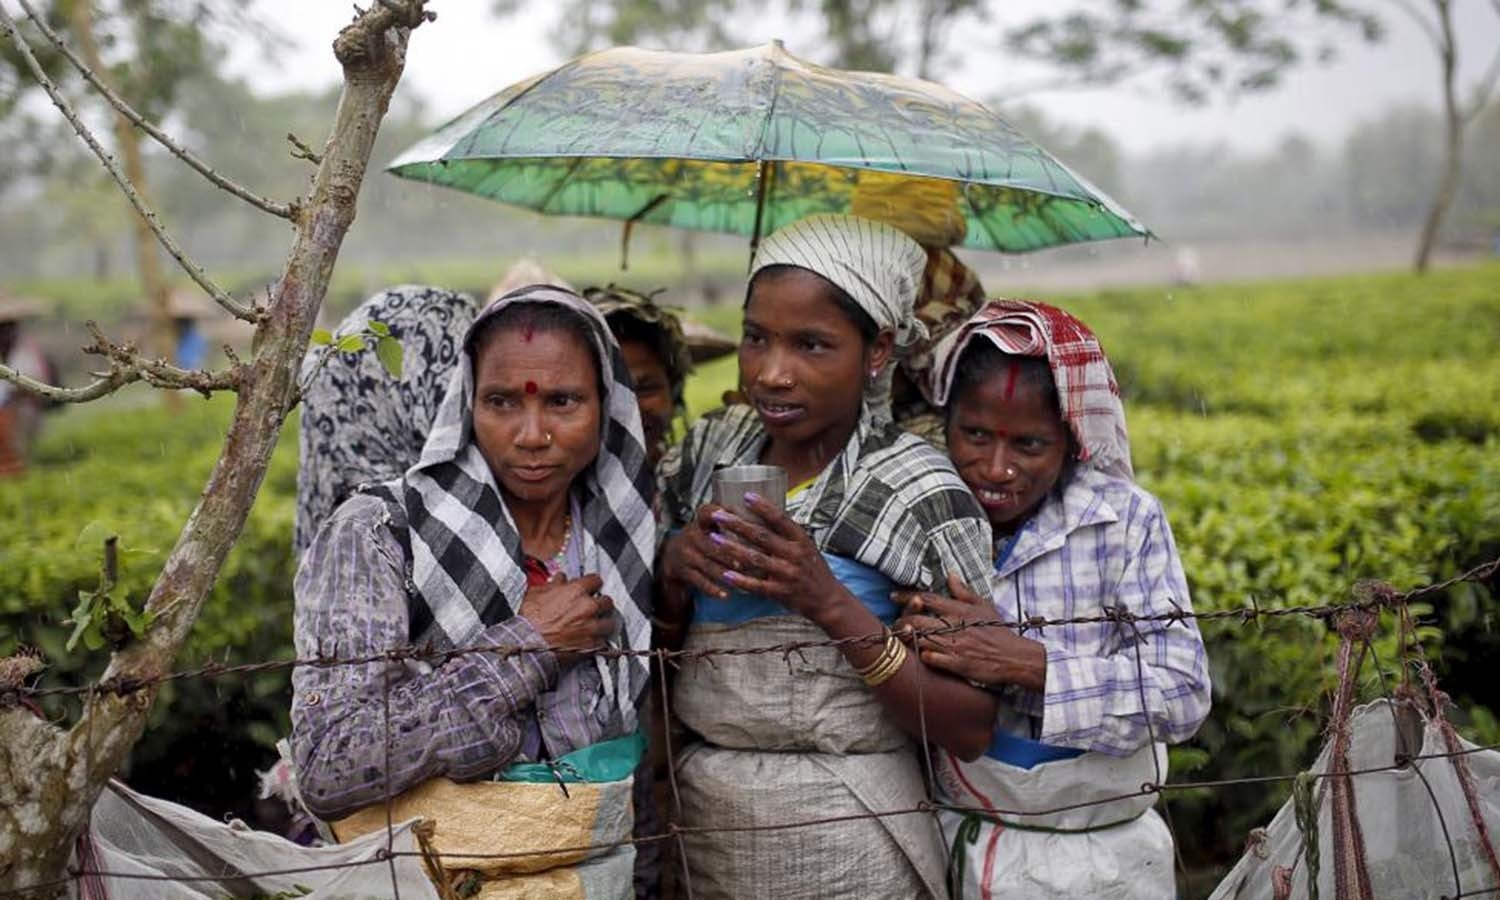 Tea garden workers huddle under an umbrella as they wait for the rain to stop to resume their work inside Aideobarie Tea Estate in Jorhat in Assam. — Reuters